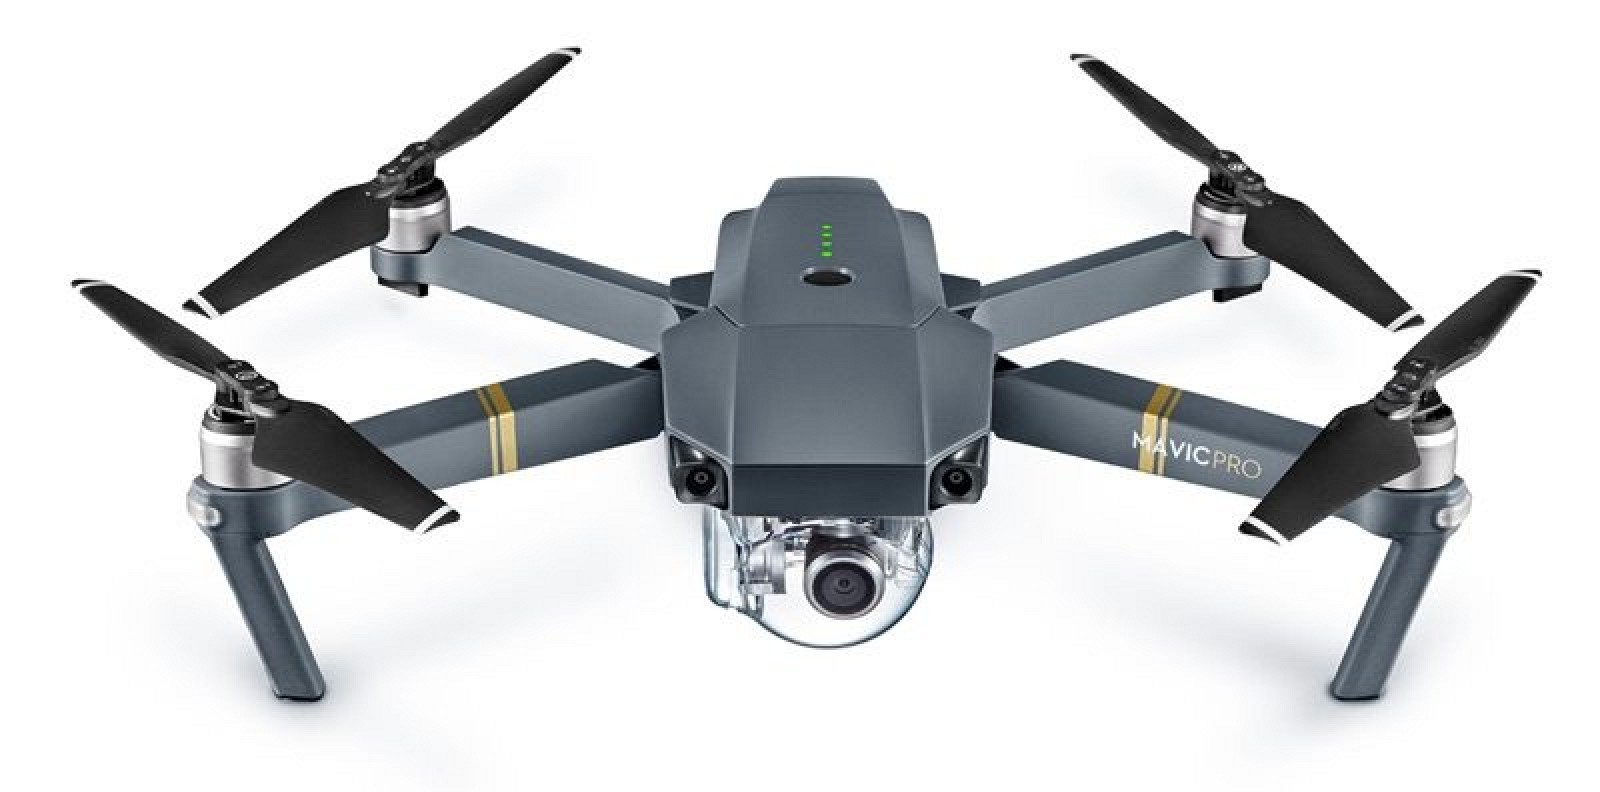 DJI Launches New Mavic Pro Drone Coming To Apple Stores